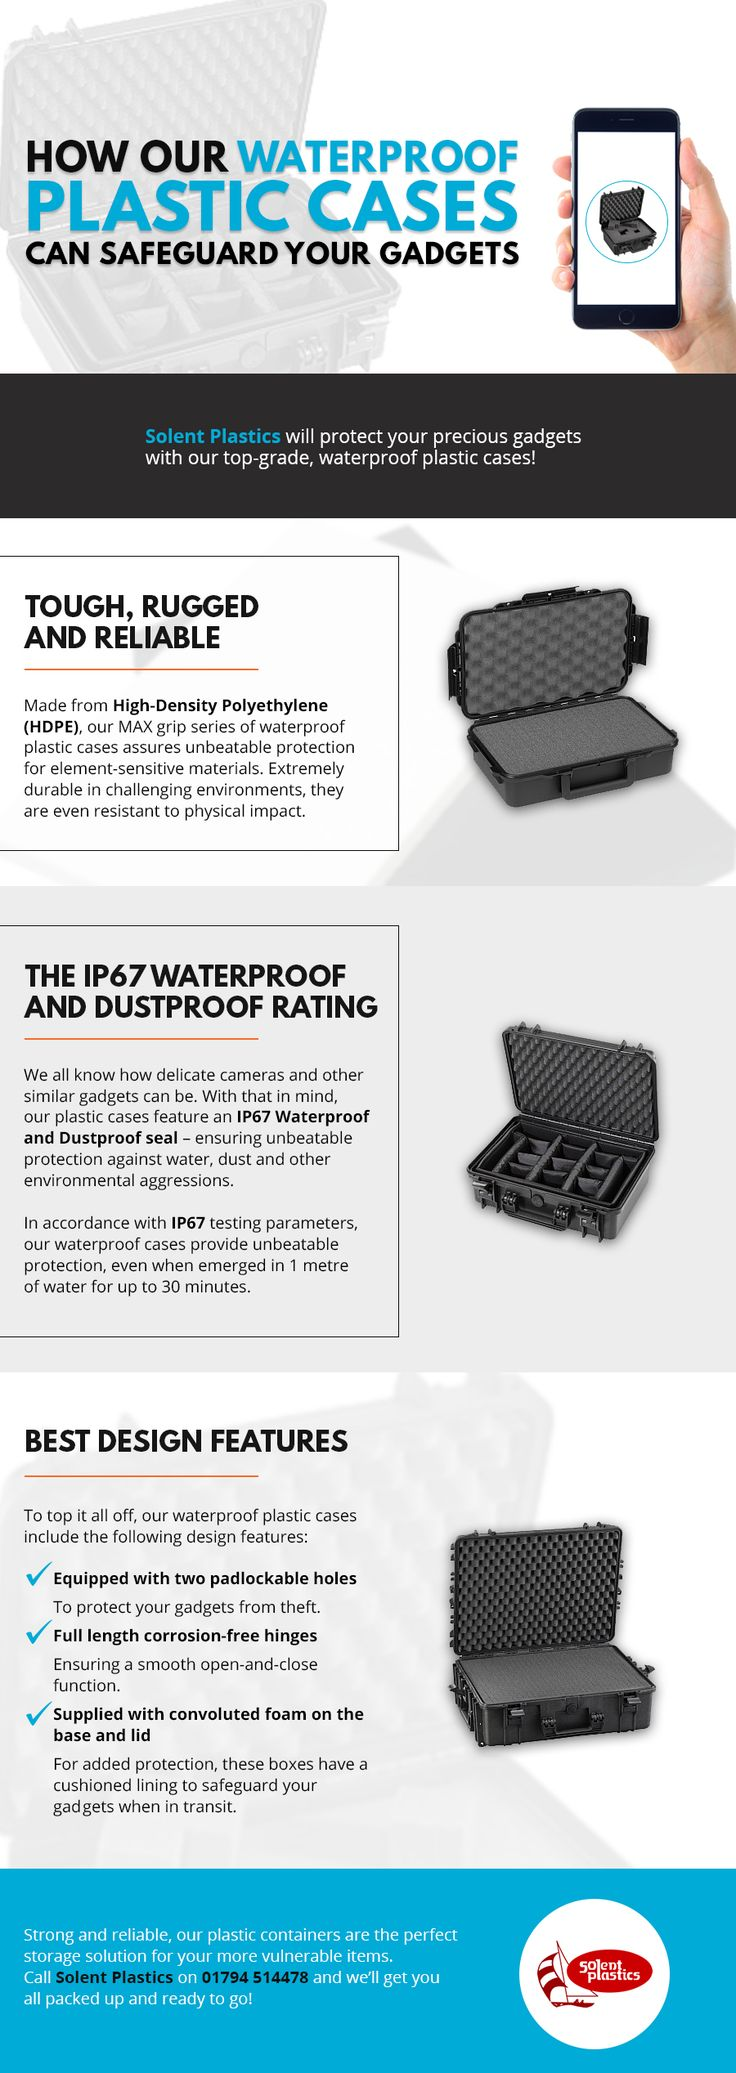 How Our Waterproof Plastic Cases Can Safeguard Your Gadgets...